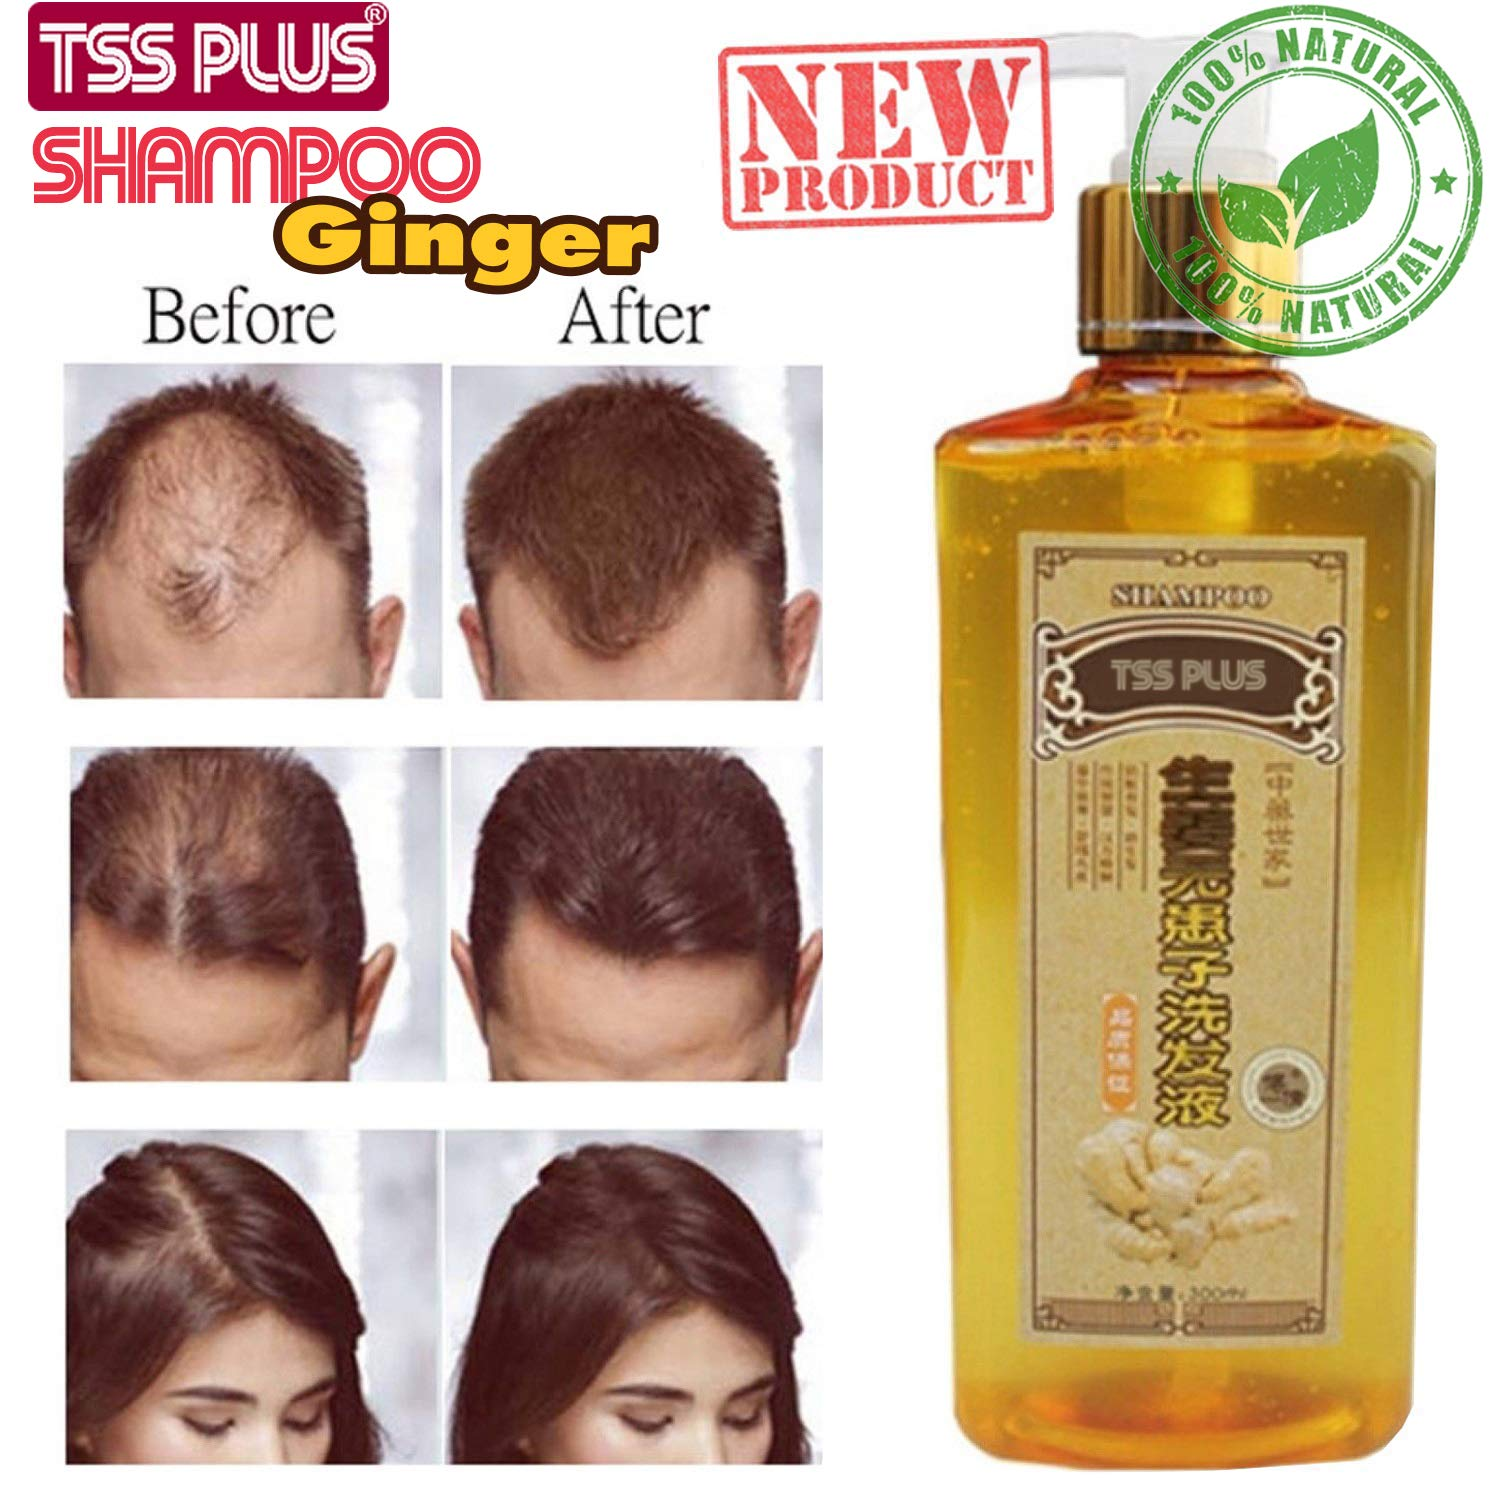 Amazon Com Tssplus New Ginger Genuine Professional Hair Ginger Shampoo Hair Regrowth Dense Fast Thicker Hair Growth Conditioner Anti Hair Loss Product Beauty